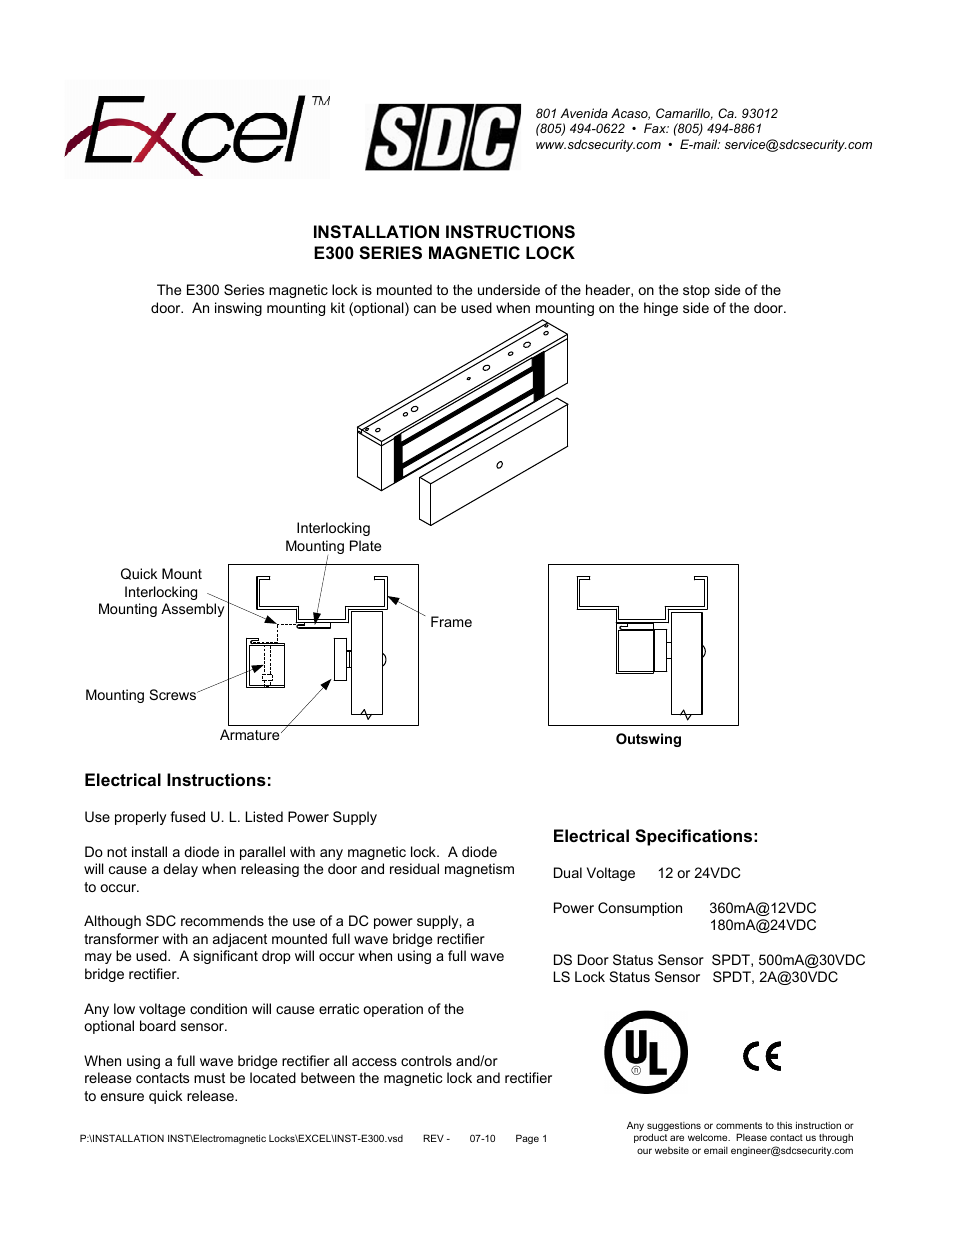 Sdc E300 Series Magnetic Lock User Manual 4 Pages Full Wave Bridge Rectifier